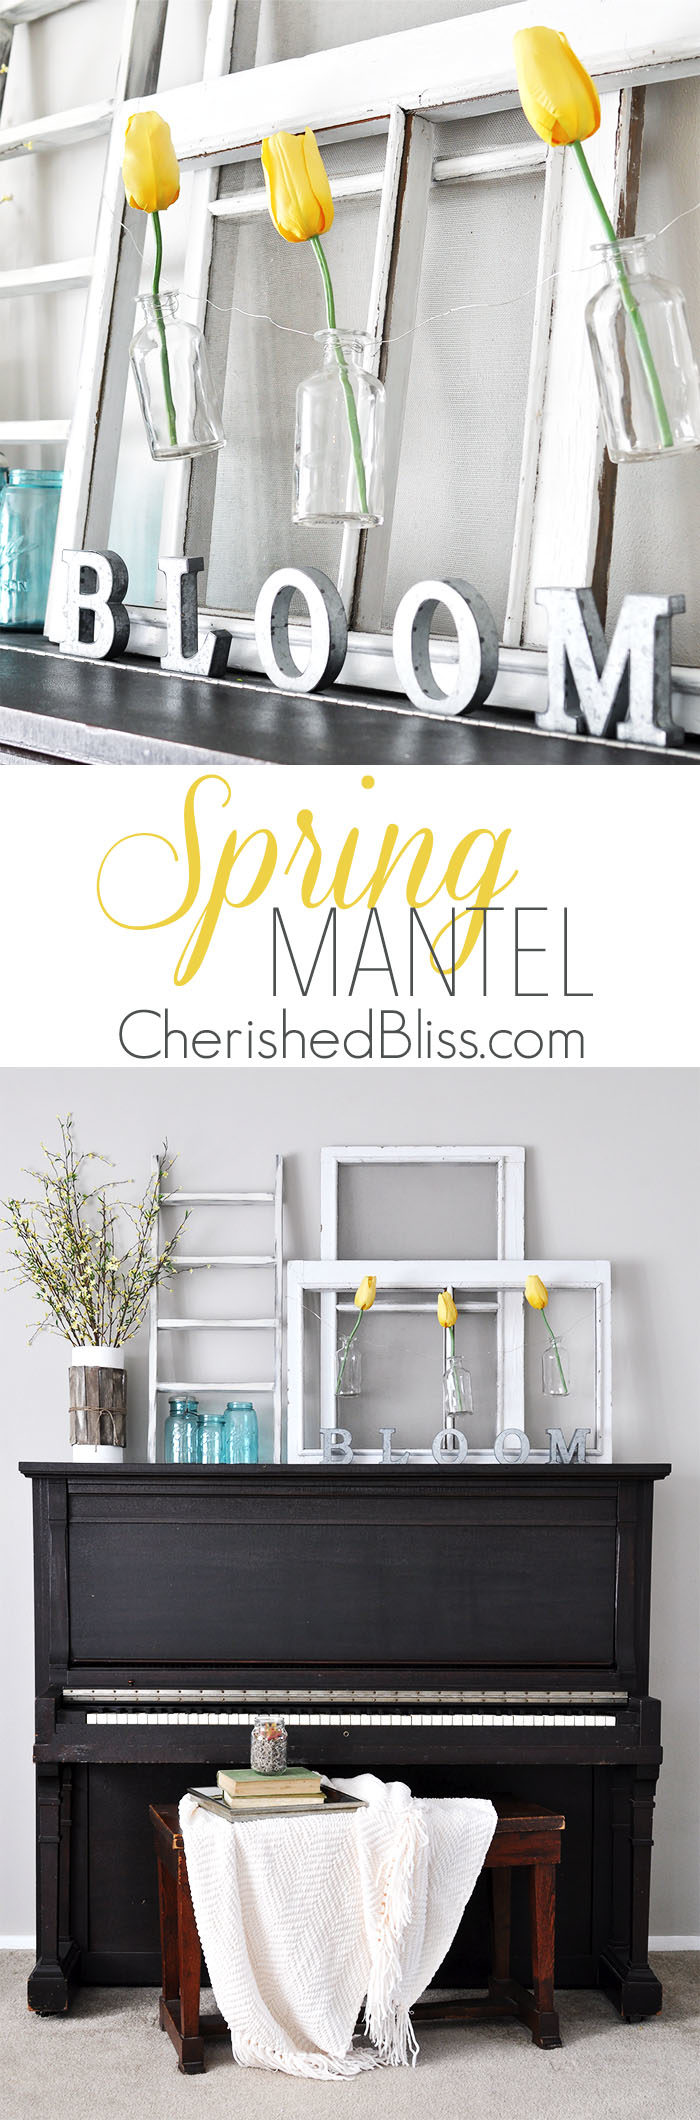 Love this Simple Cottage Farmhouse Spring Mantel from CherishedBliss.com